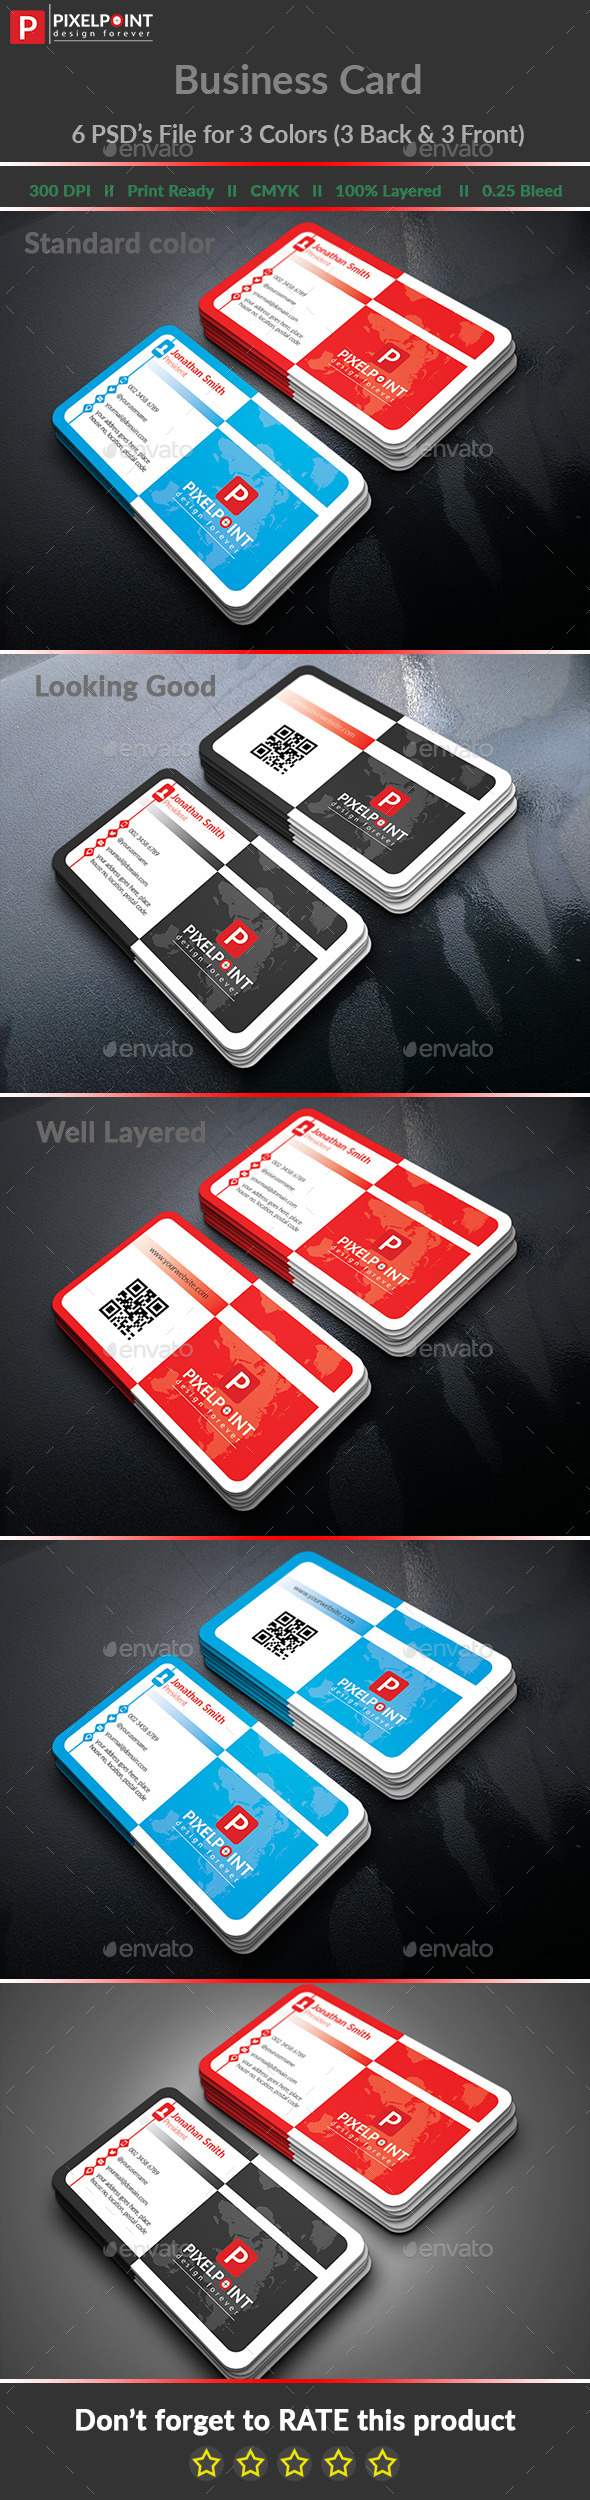 Stylish Personal Business Card - Business Cards Print Templates